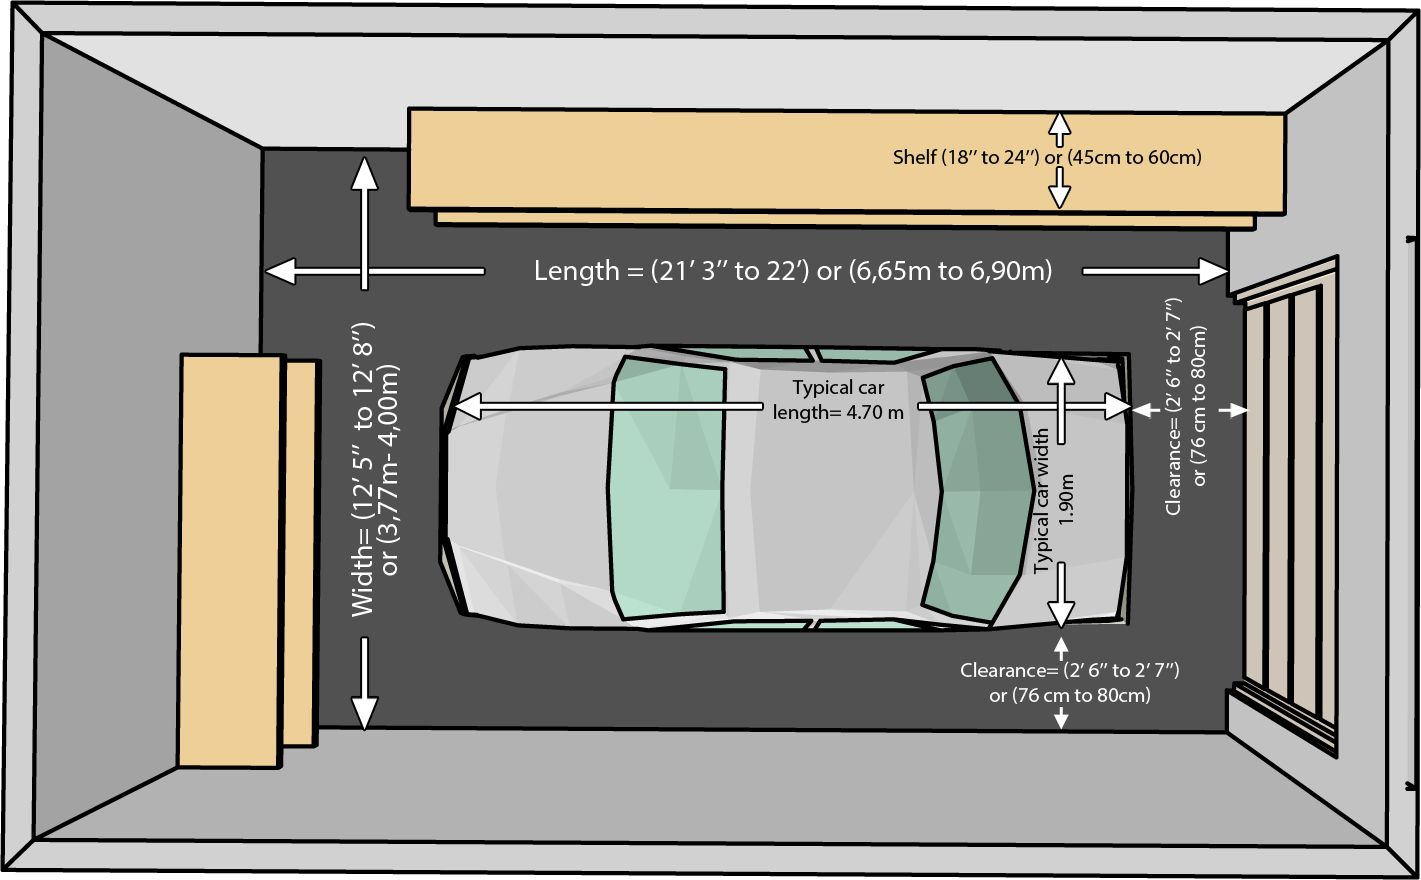 17 Best images about Dimensions Garage on Pinterest   Home design  Cars and  Garage door sizes. 17 Best images about Dimensions Garage on Pinterest   Home design